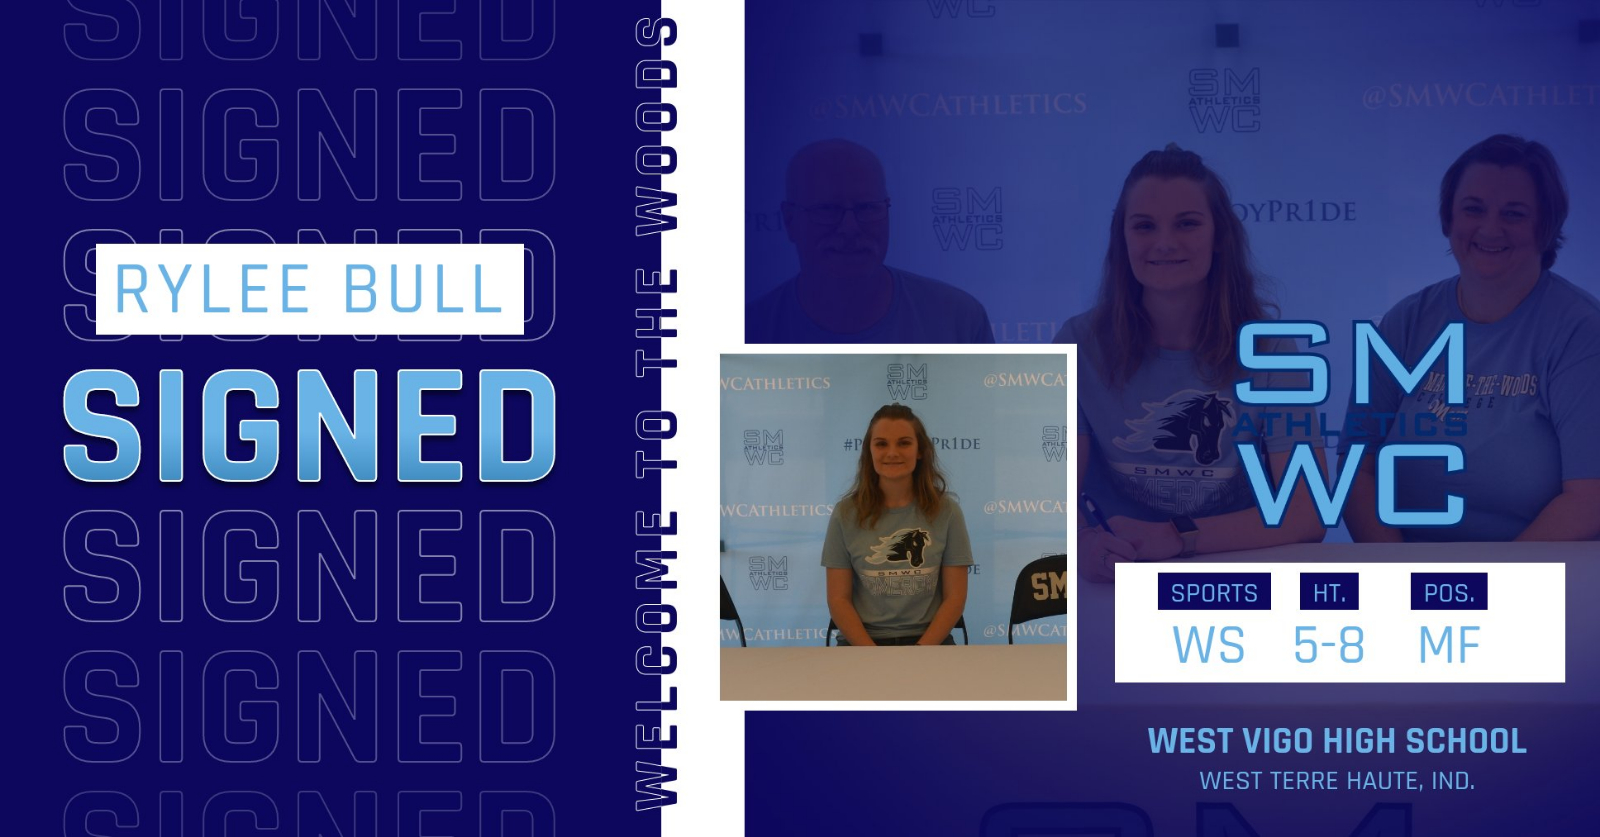 Rylee Bull signs with SMWC